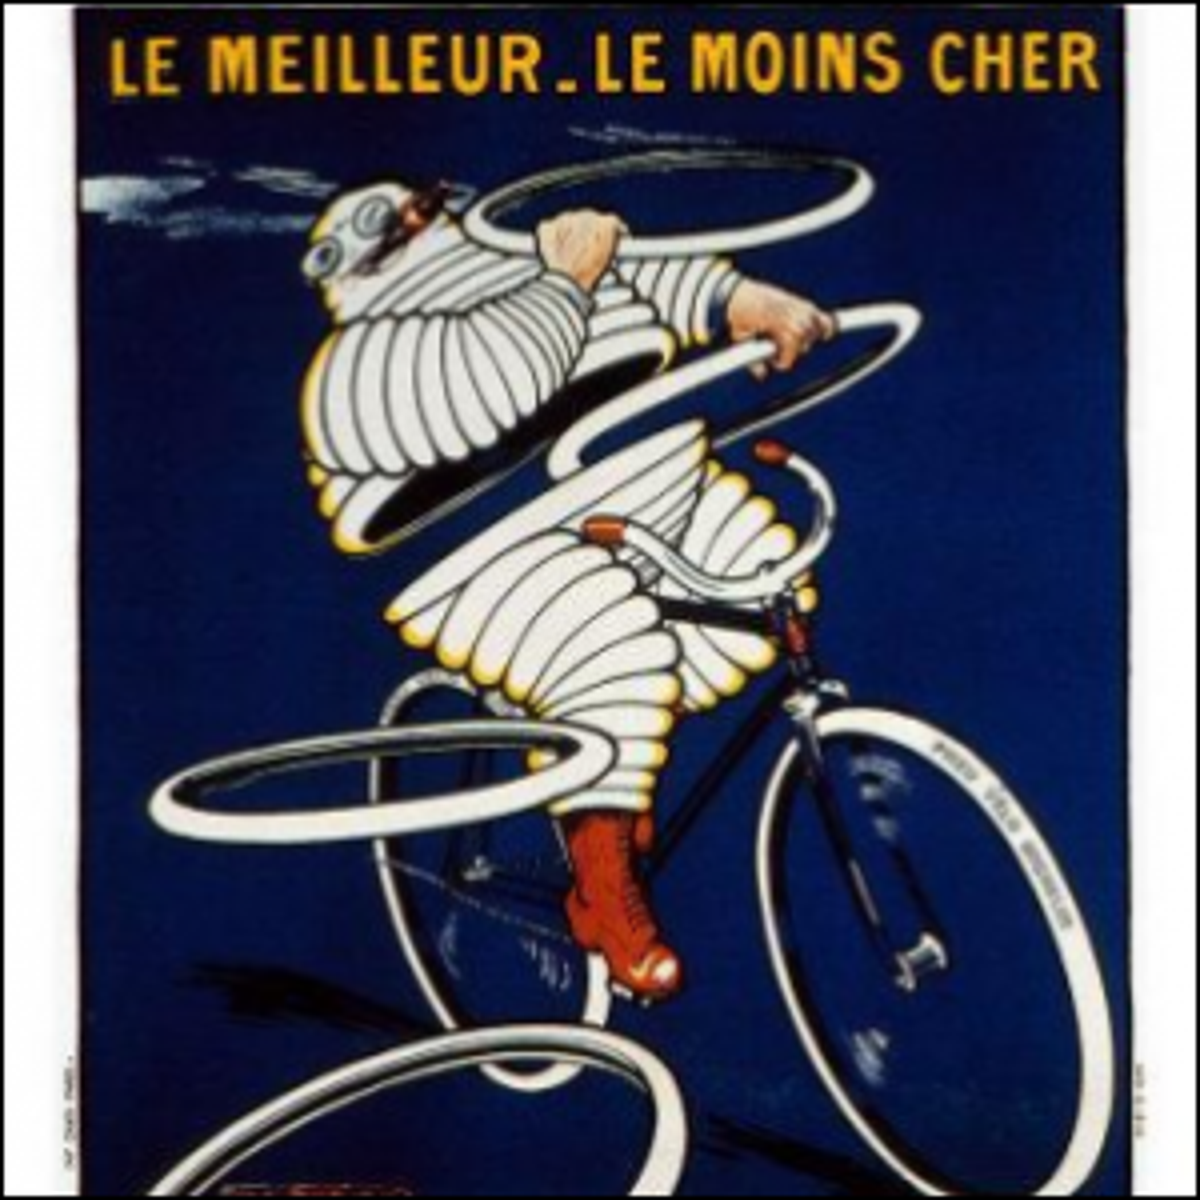 An early advertisement featuring the Michelin Man.